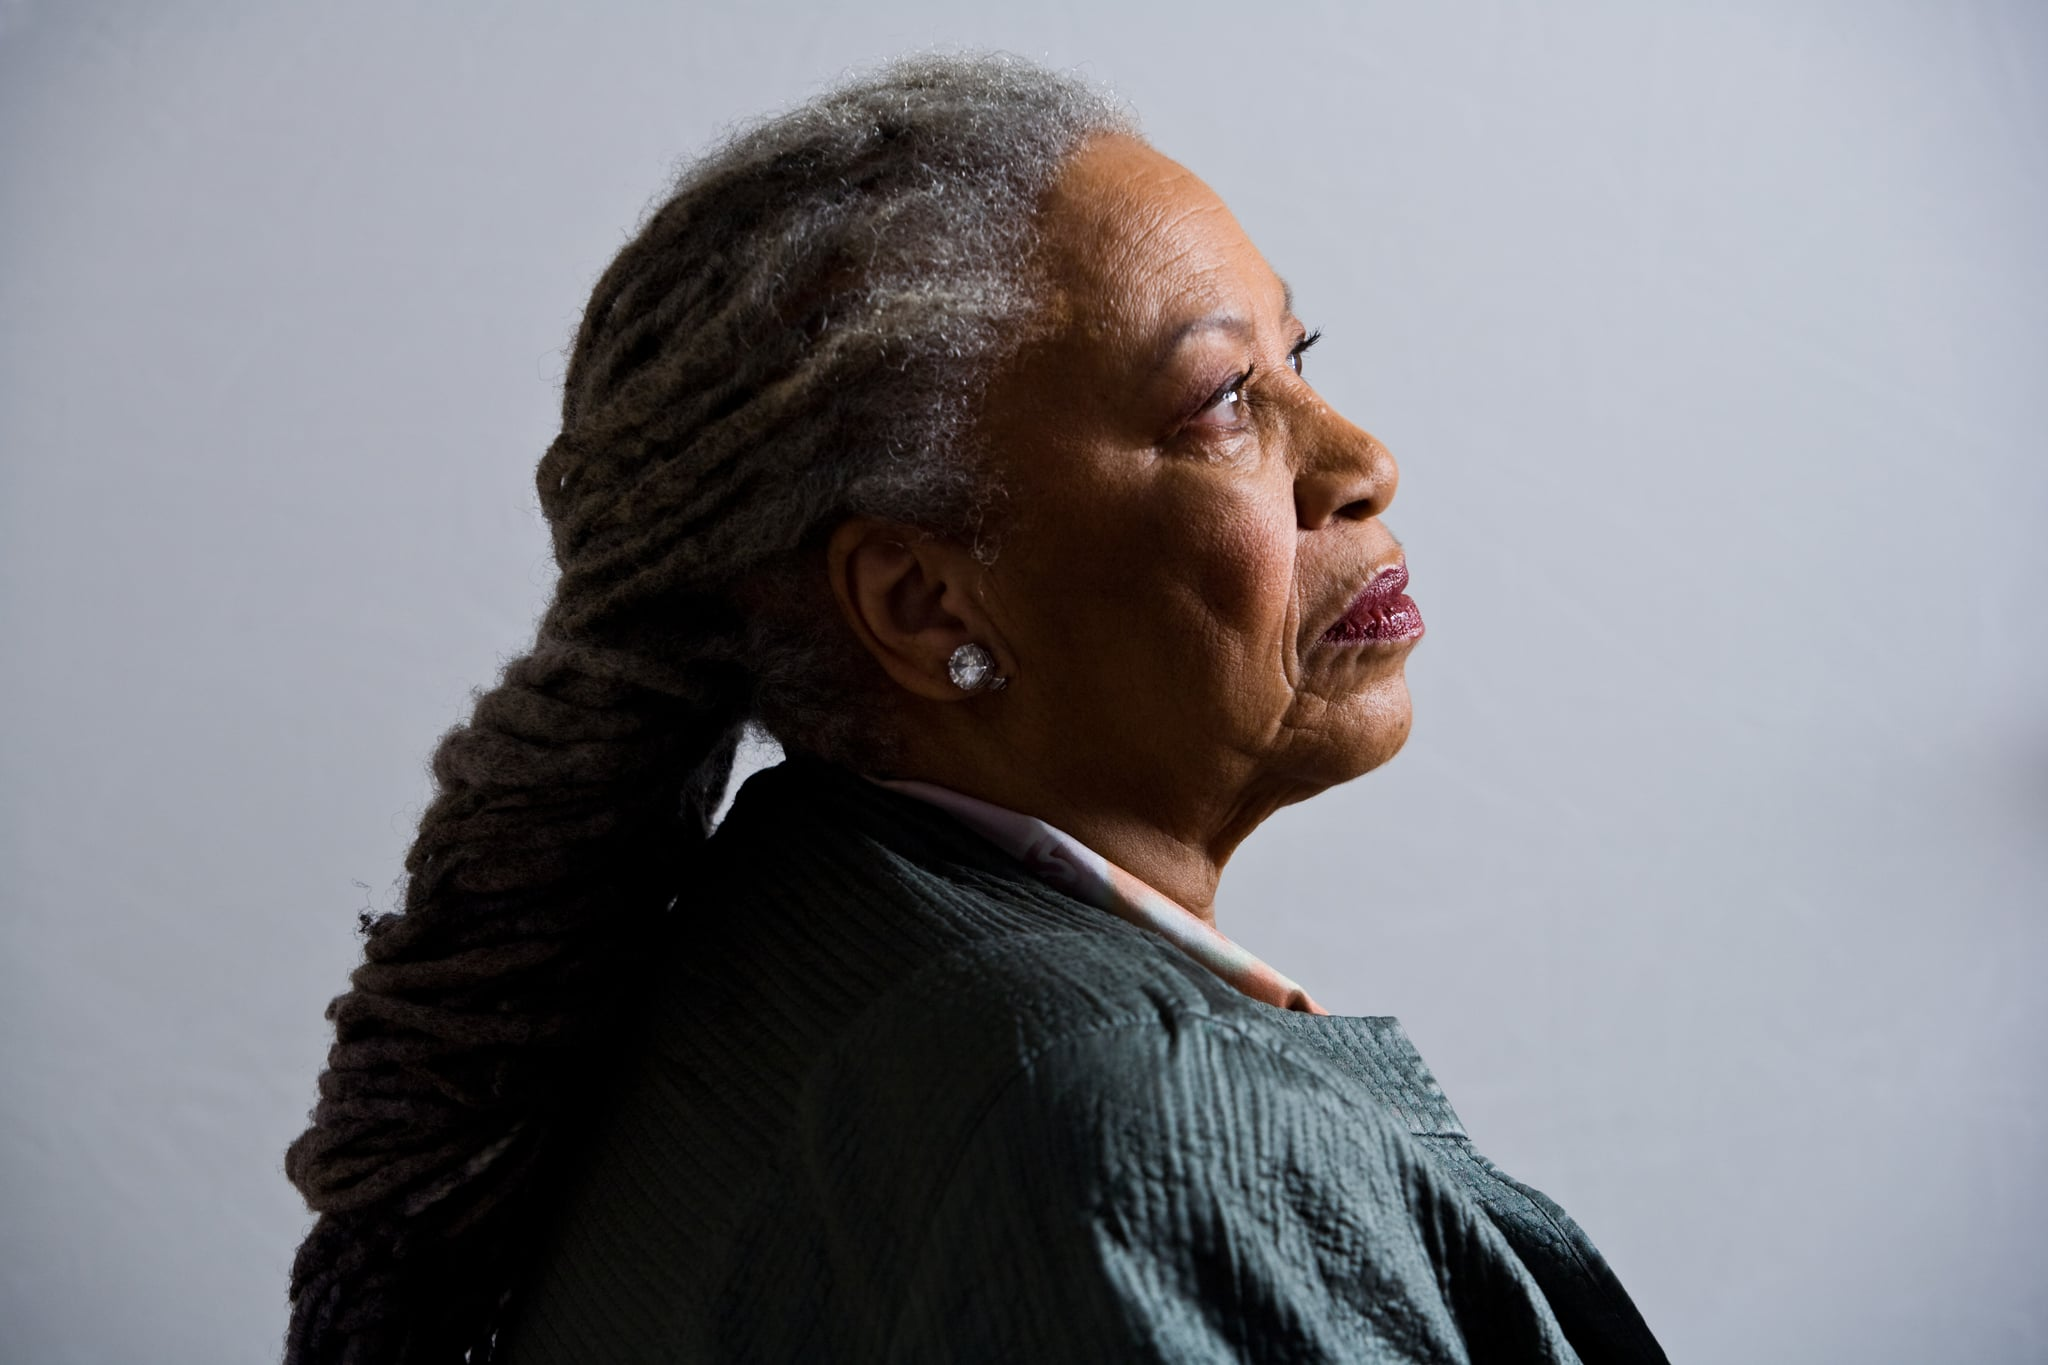 Pulitzer prize winning author, Toni Morrison, 77, is photographed in her New York apartment .Toni Morrison, in her New York apartment. (Photo by Timothy Fadek/Corbis via Getty Images)